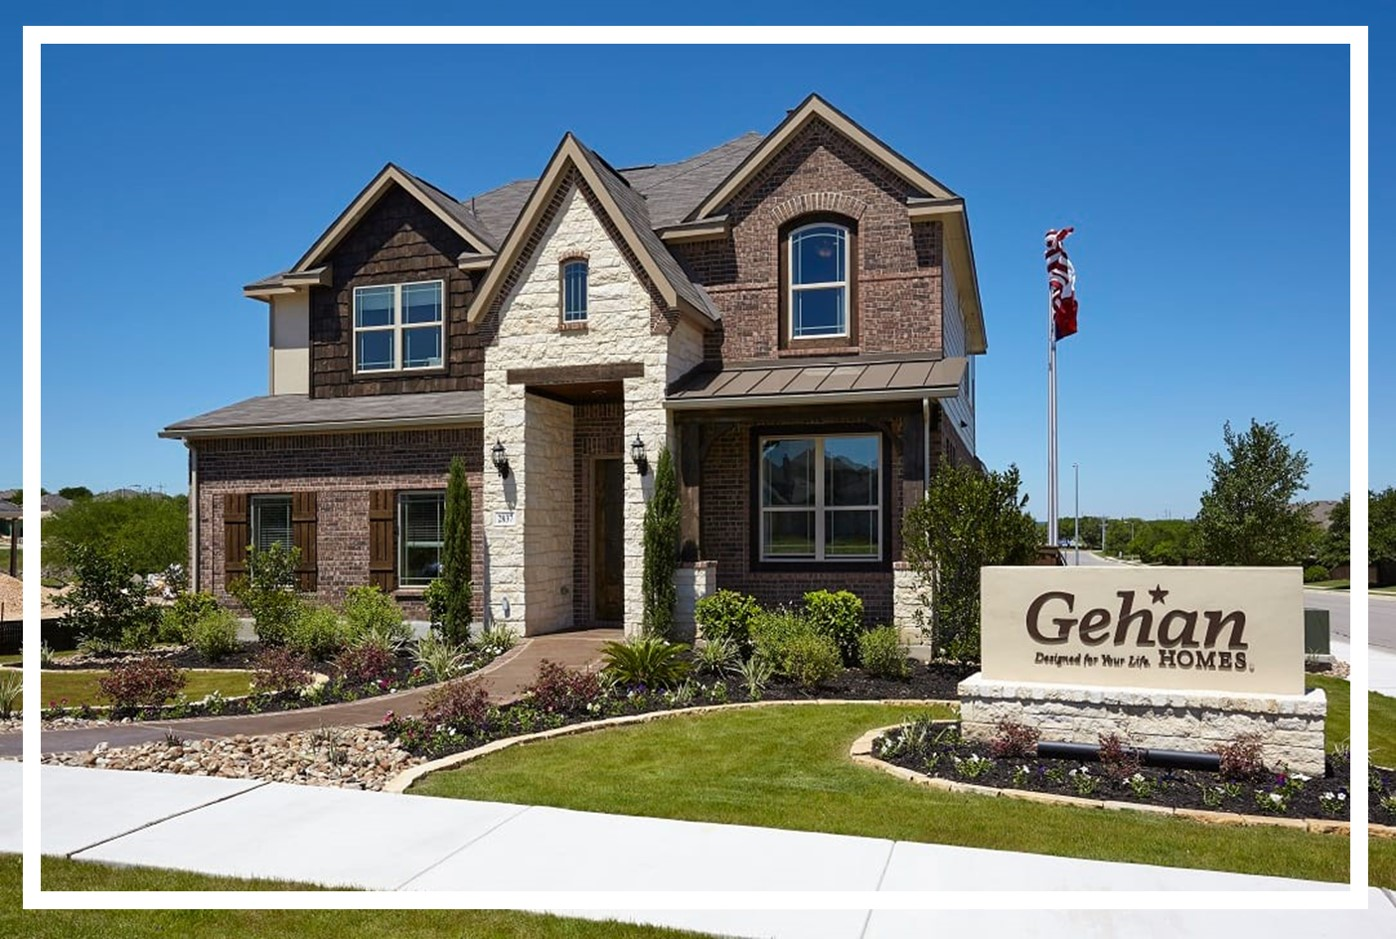 Press Release | Gehan Homes Selects Clare As Their Smart Home & Security Partner